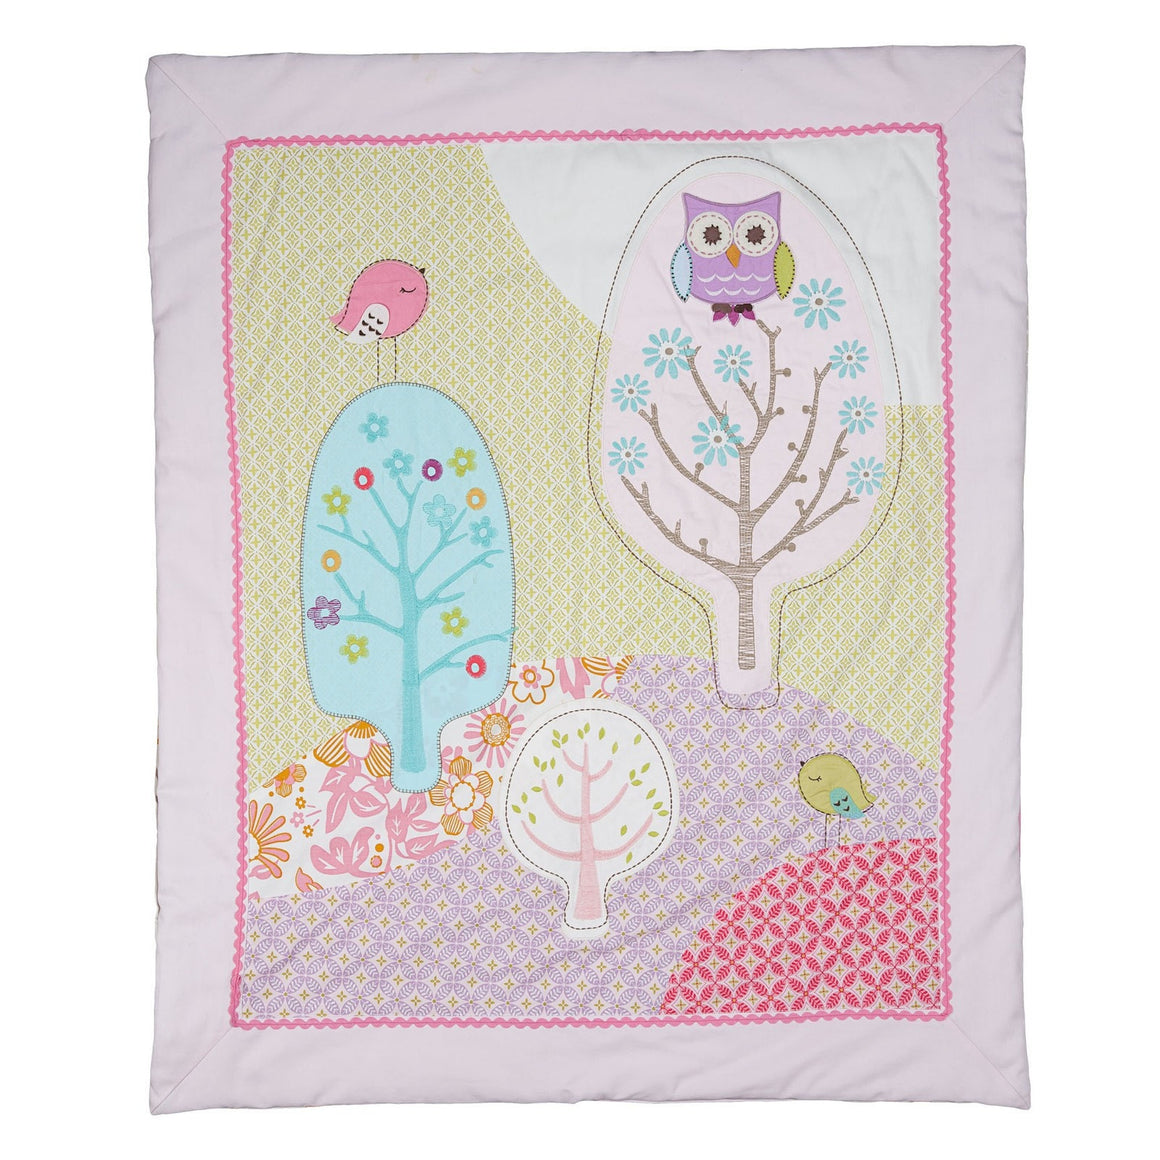 Poppy Seed All Seasons Cot Quilt